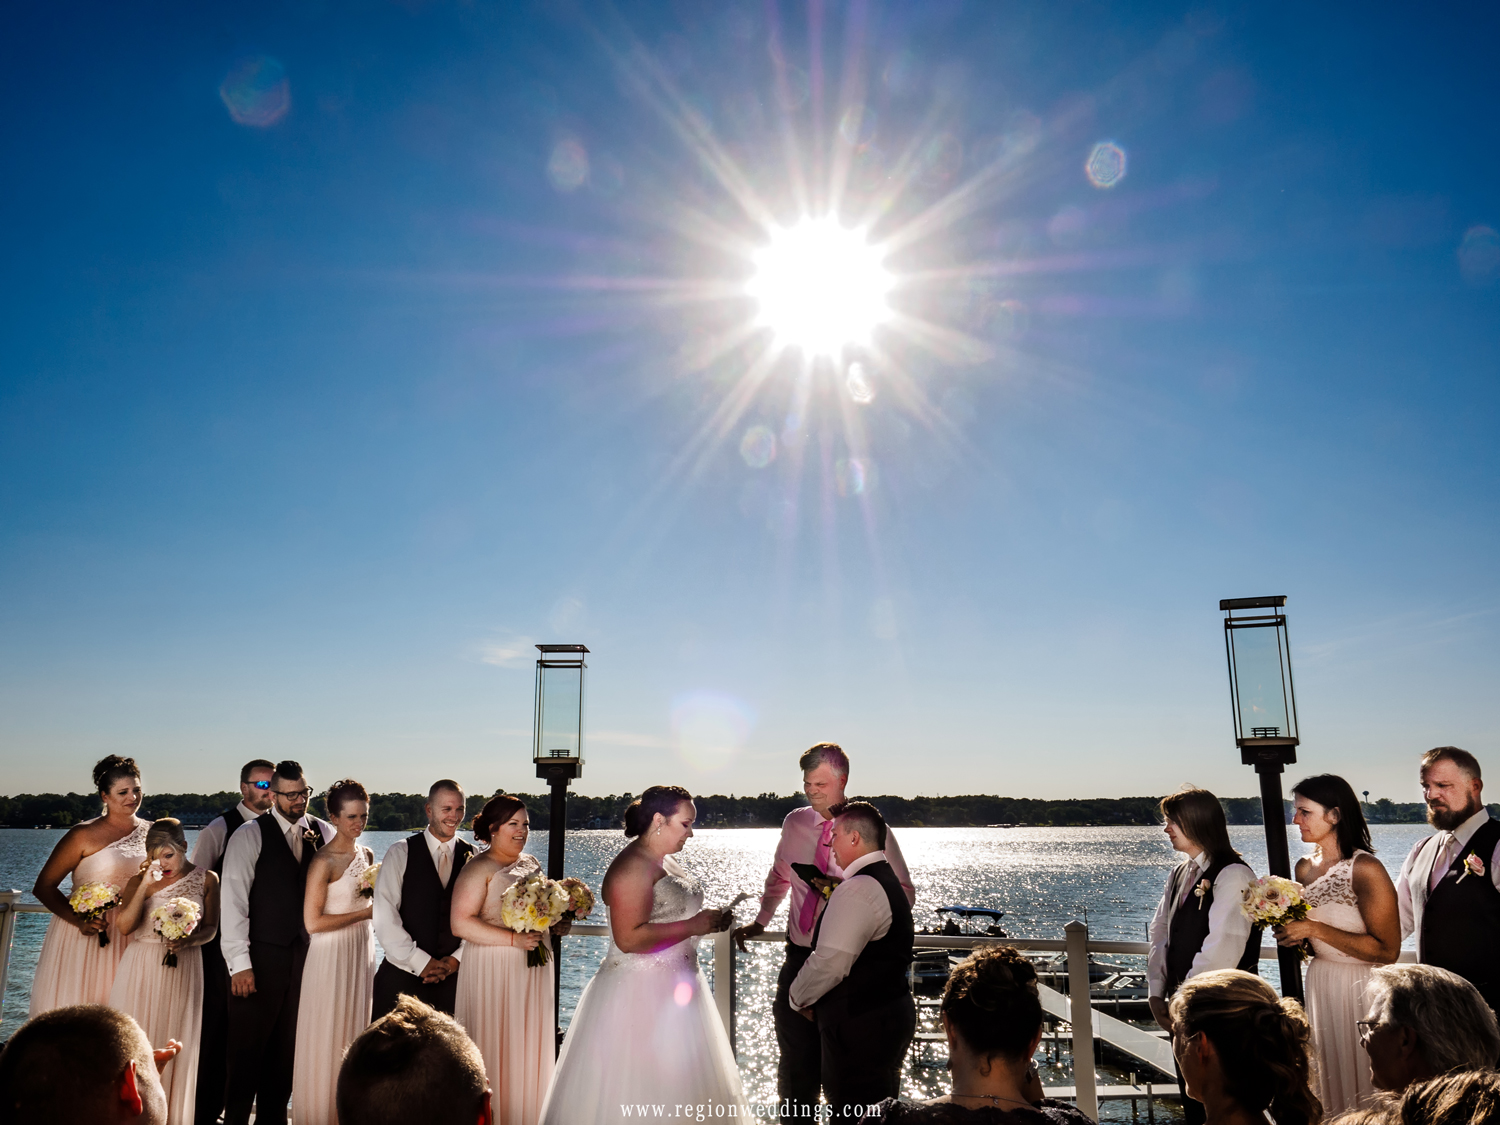 Outdoor wedding ceremony on the balcony at Lighthouse Restaurant.